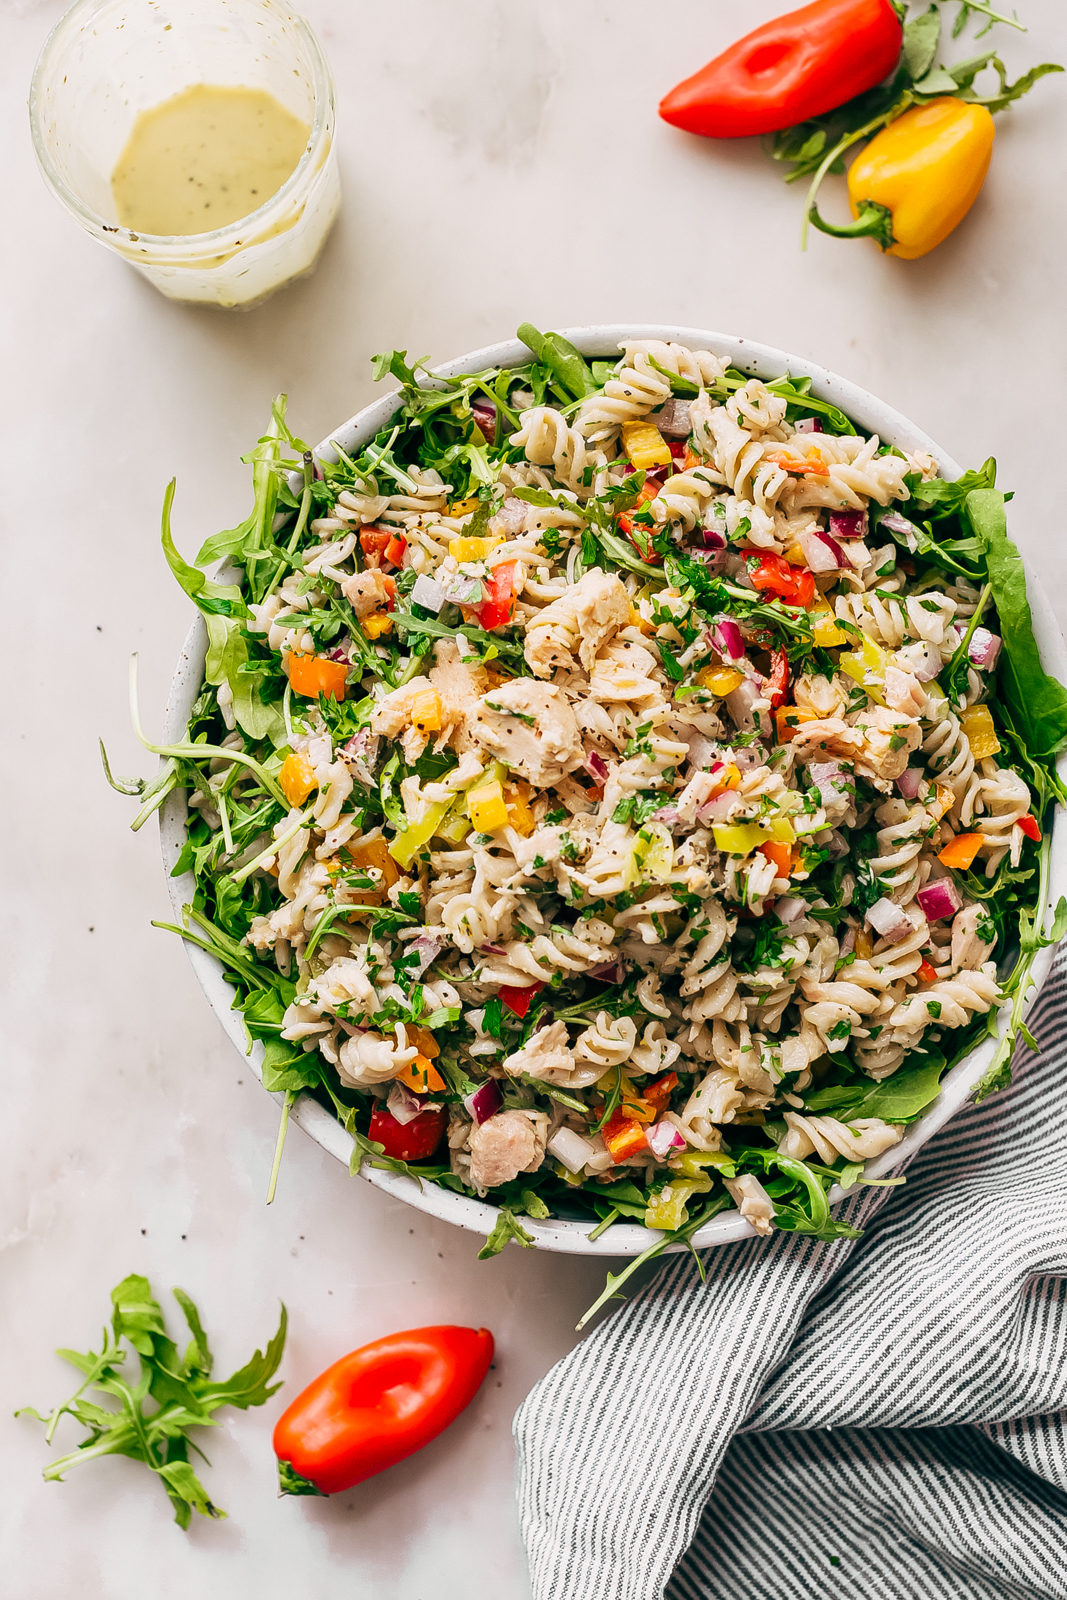 speckled bowl with arugula topped with tuna pasta salad on white marble surface